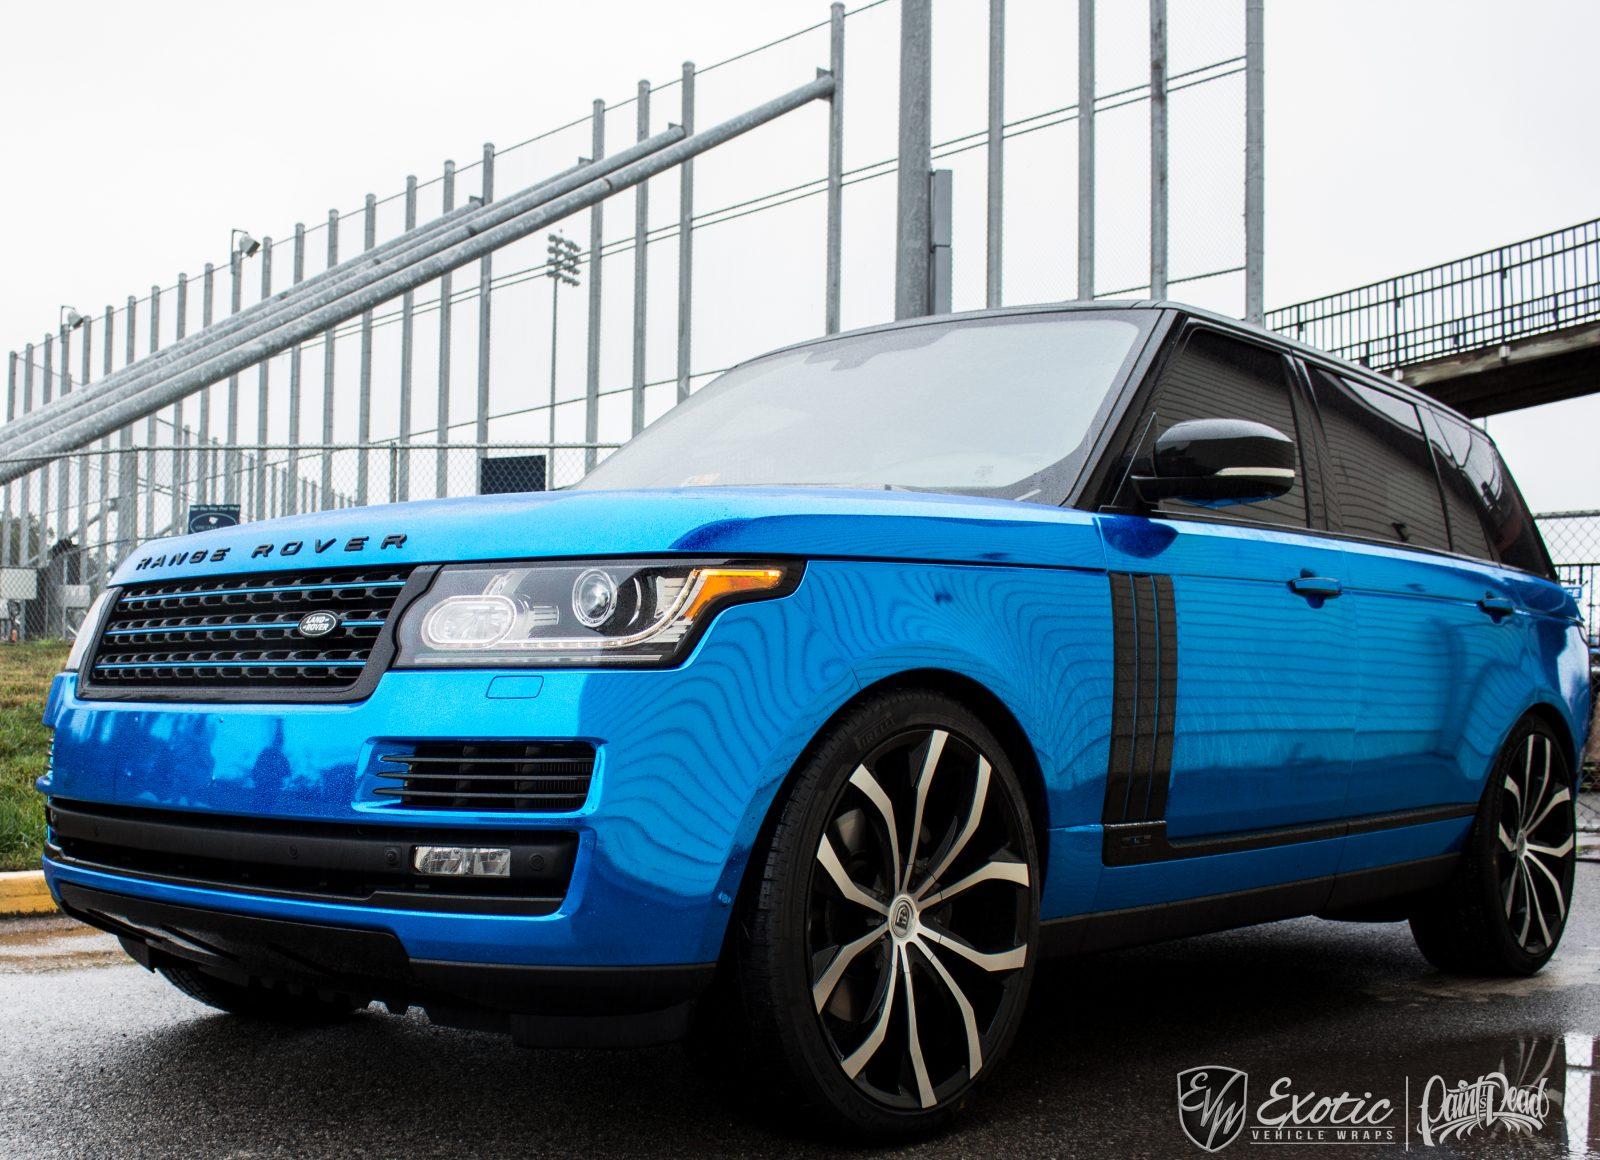 Matte Range Rover >> Vehicle Wraps, Paint Protection, Vehicle Customs Installations